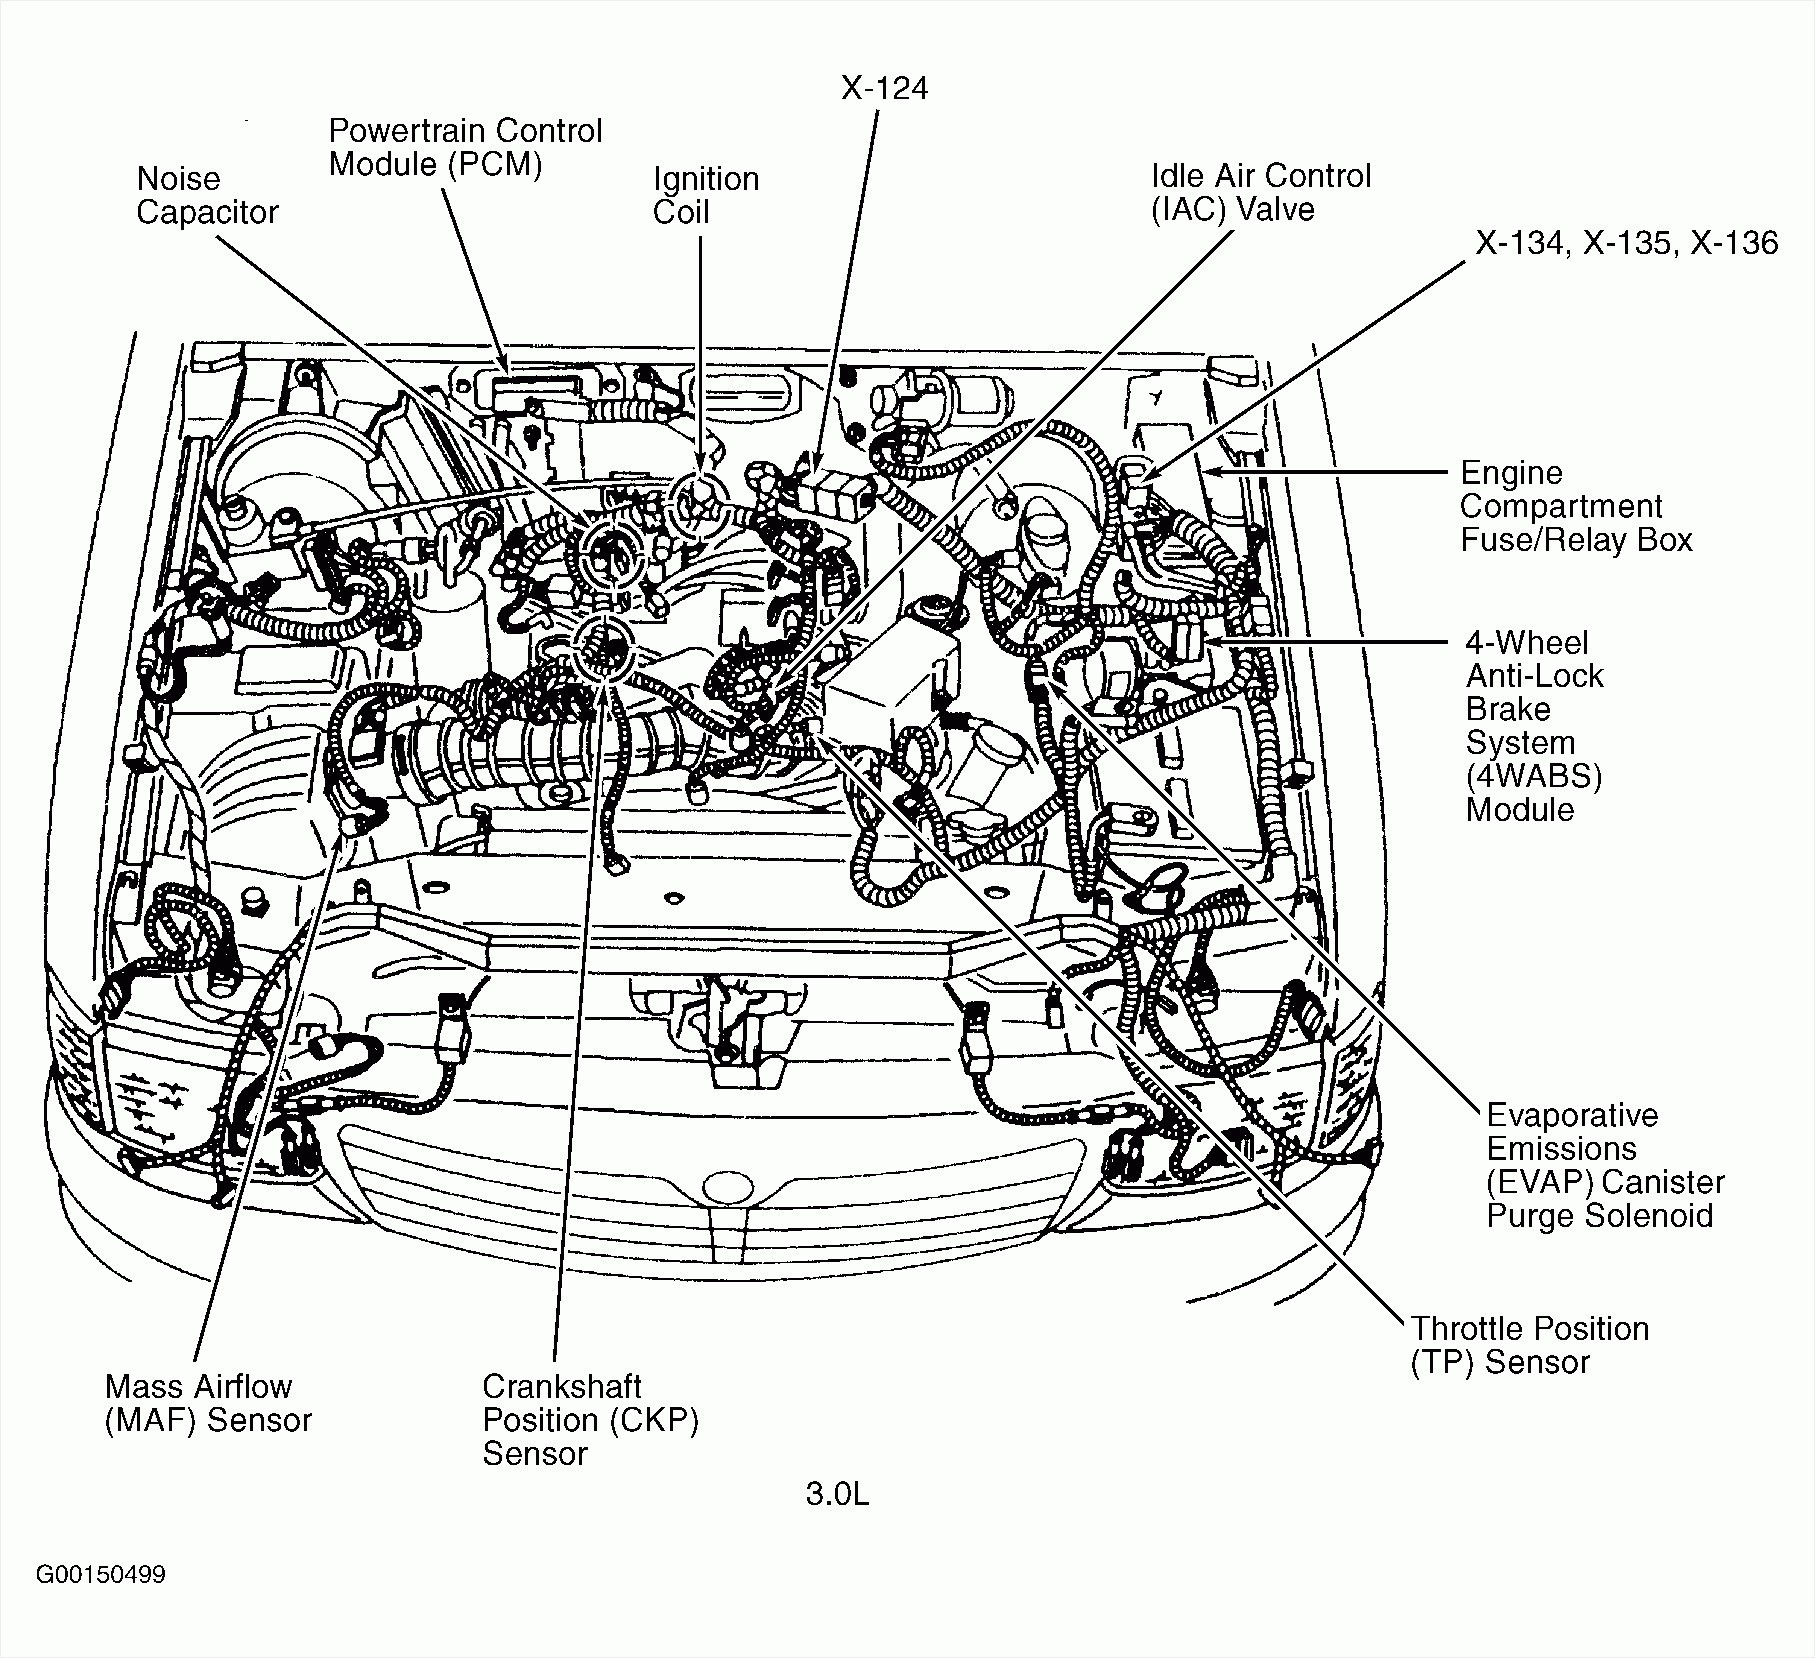 2011 Buick Regal Engine Diagram Wiring 1999 Turn Signal